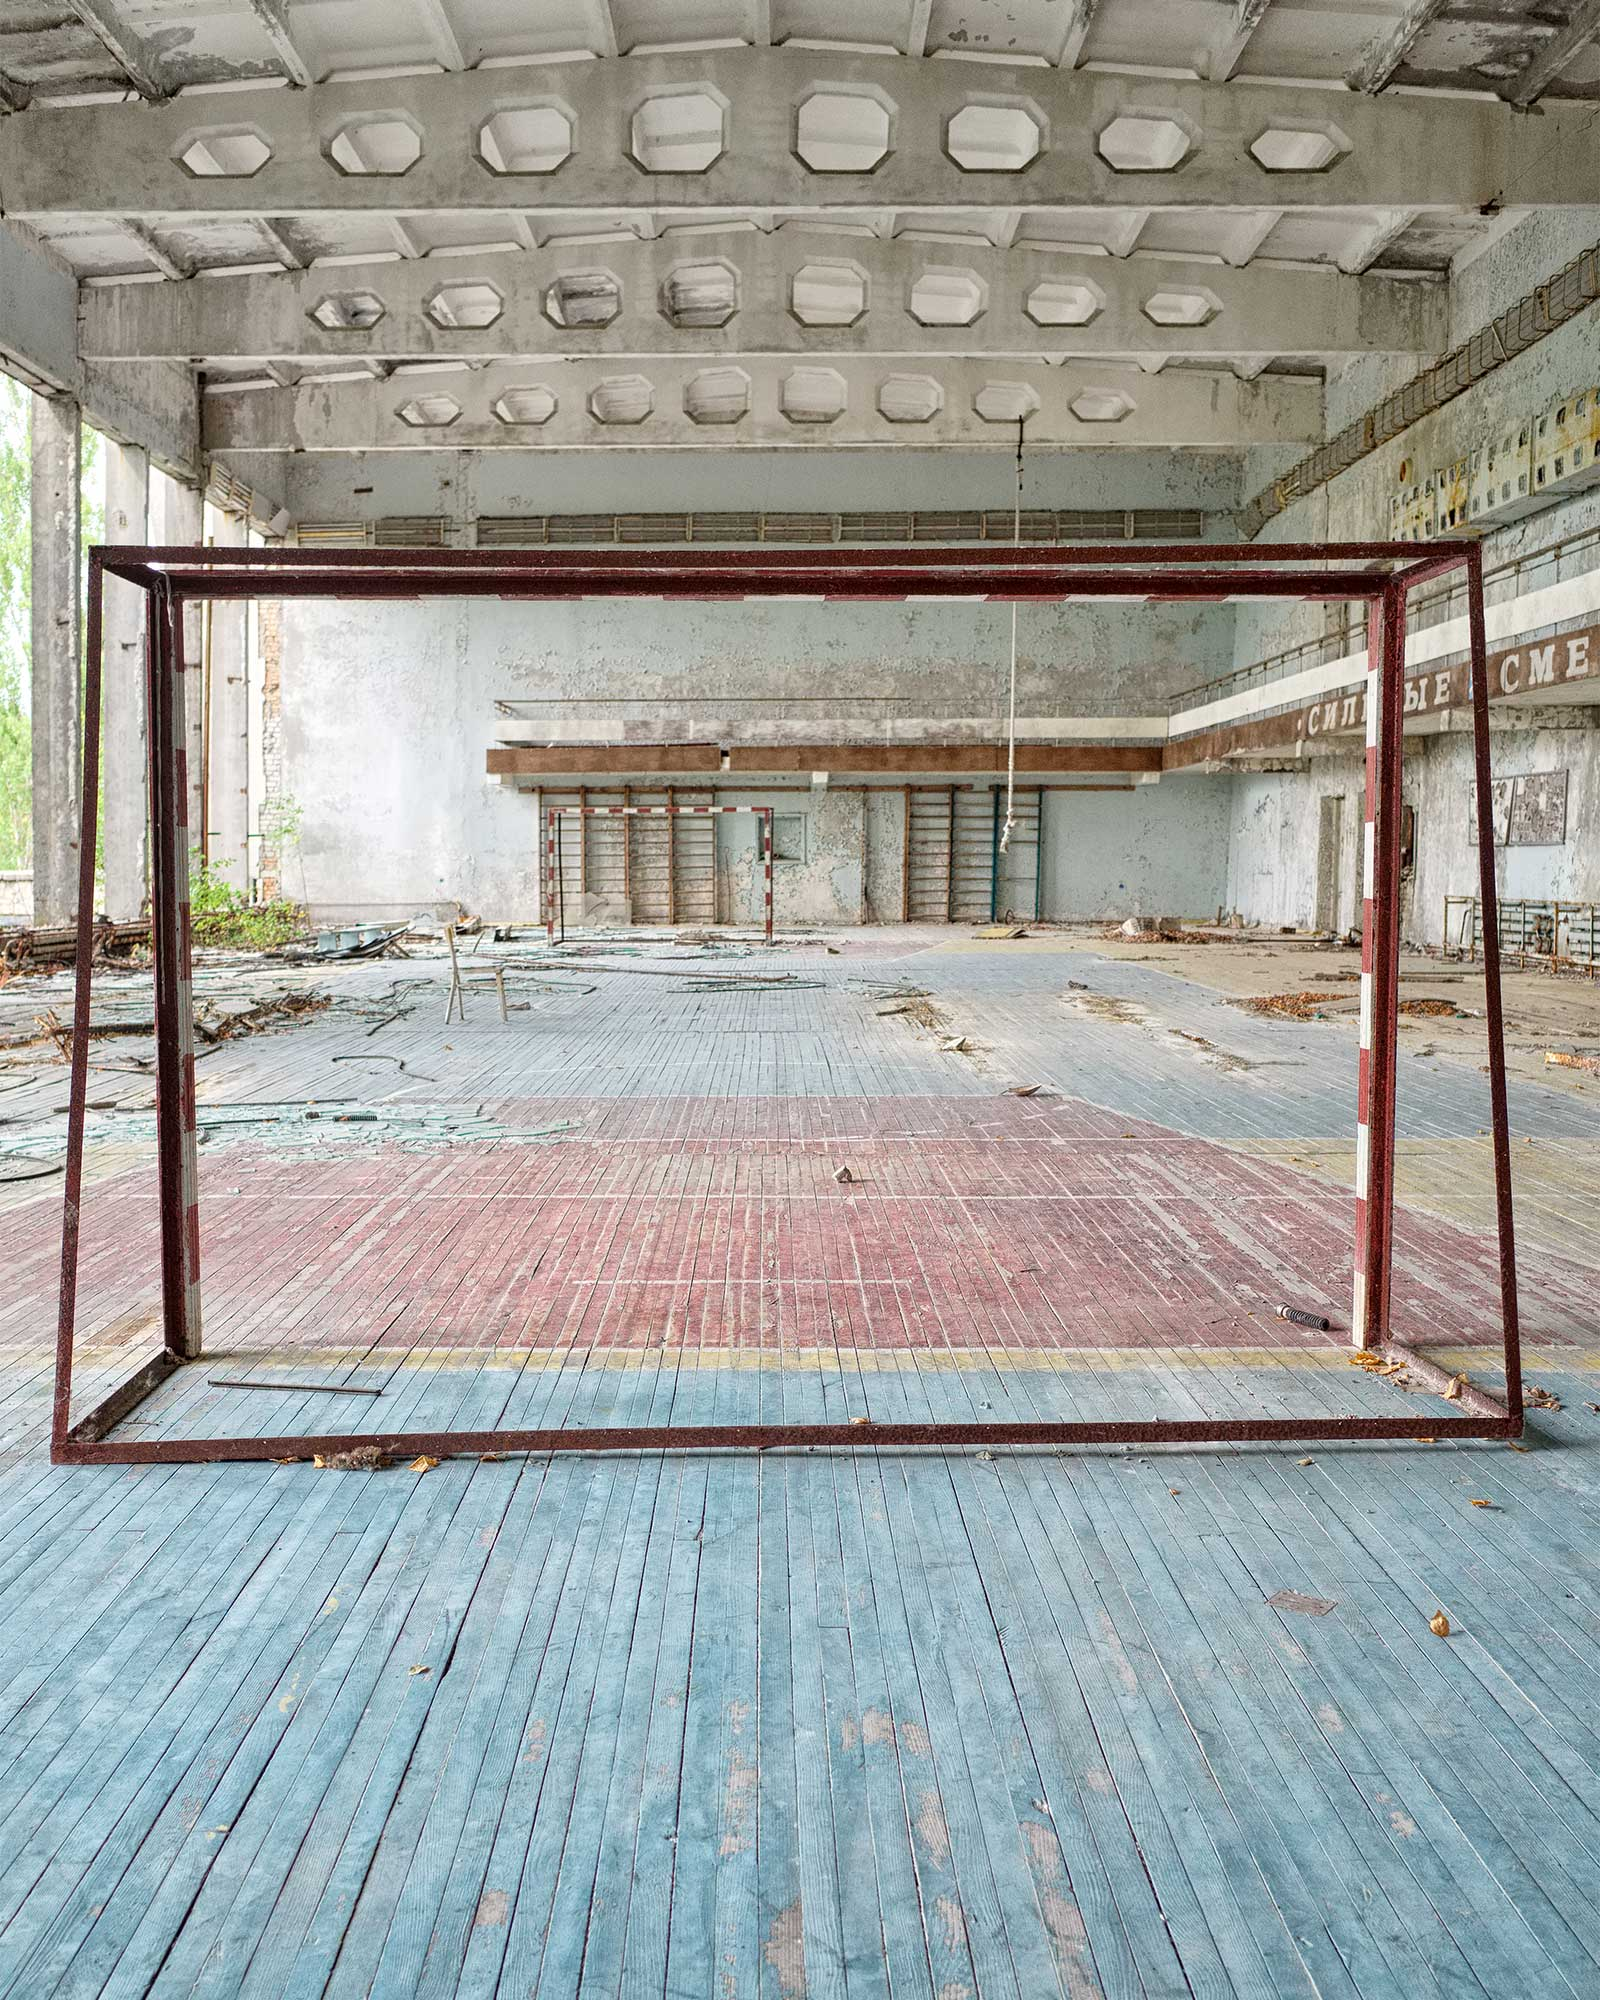 055_chernobyl_PalaceOfCulture_wd.jpg